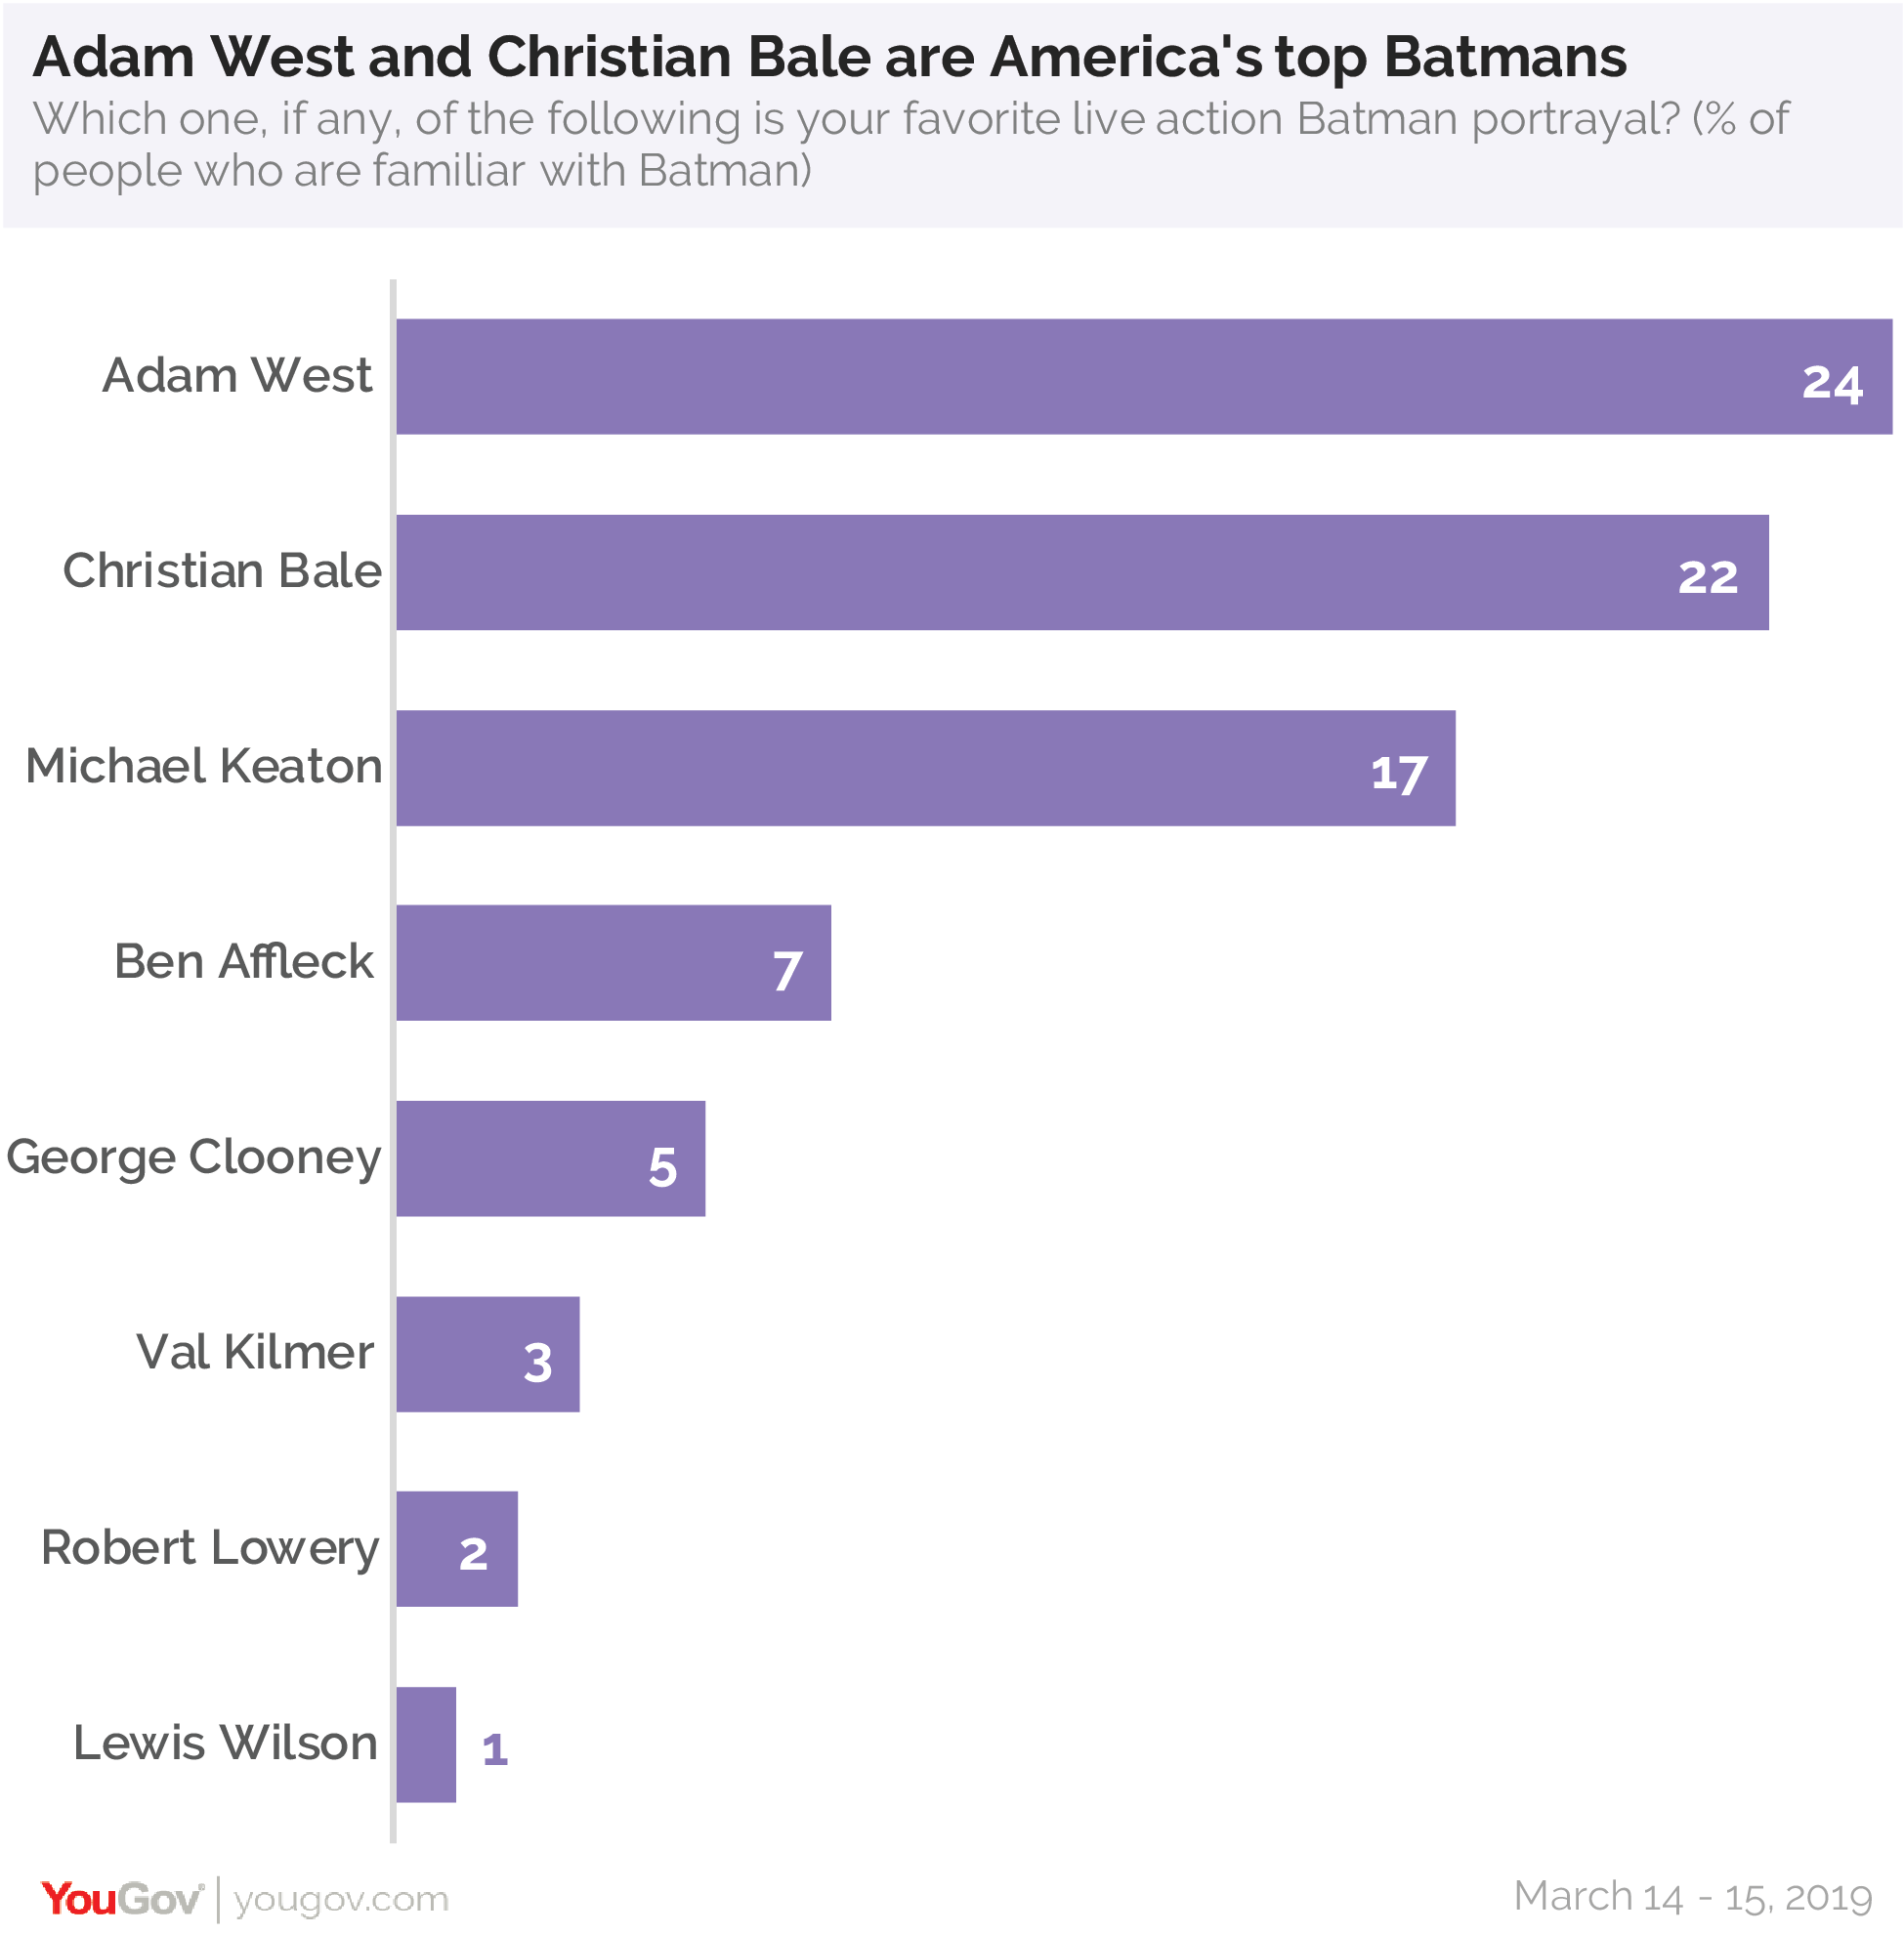 Adam West and Christian Bale are America's top Batmans